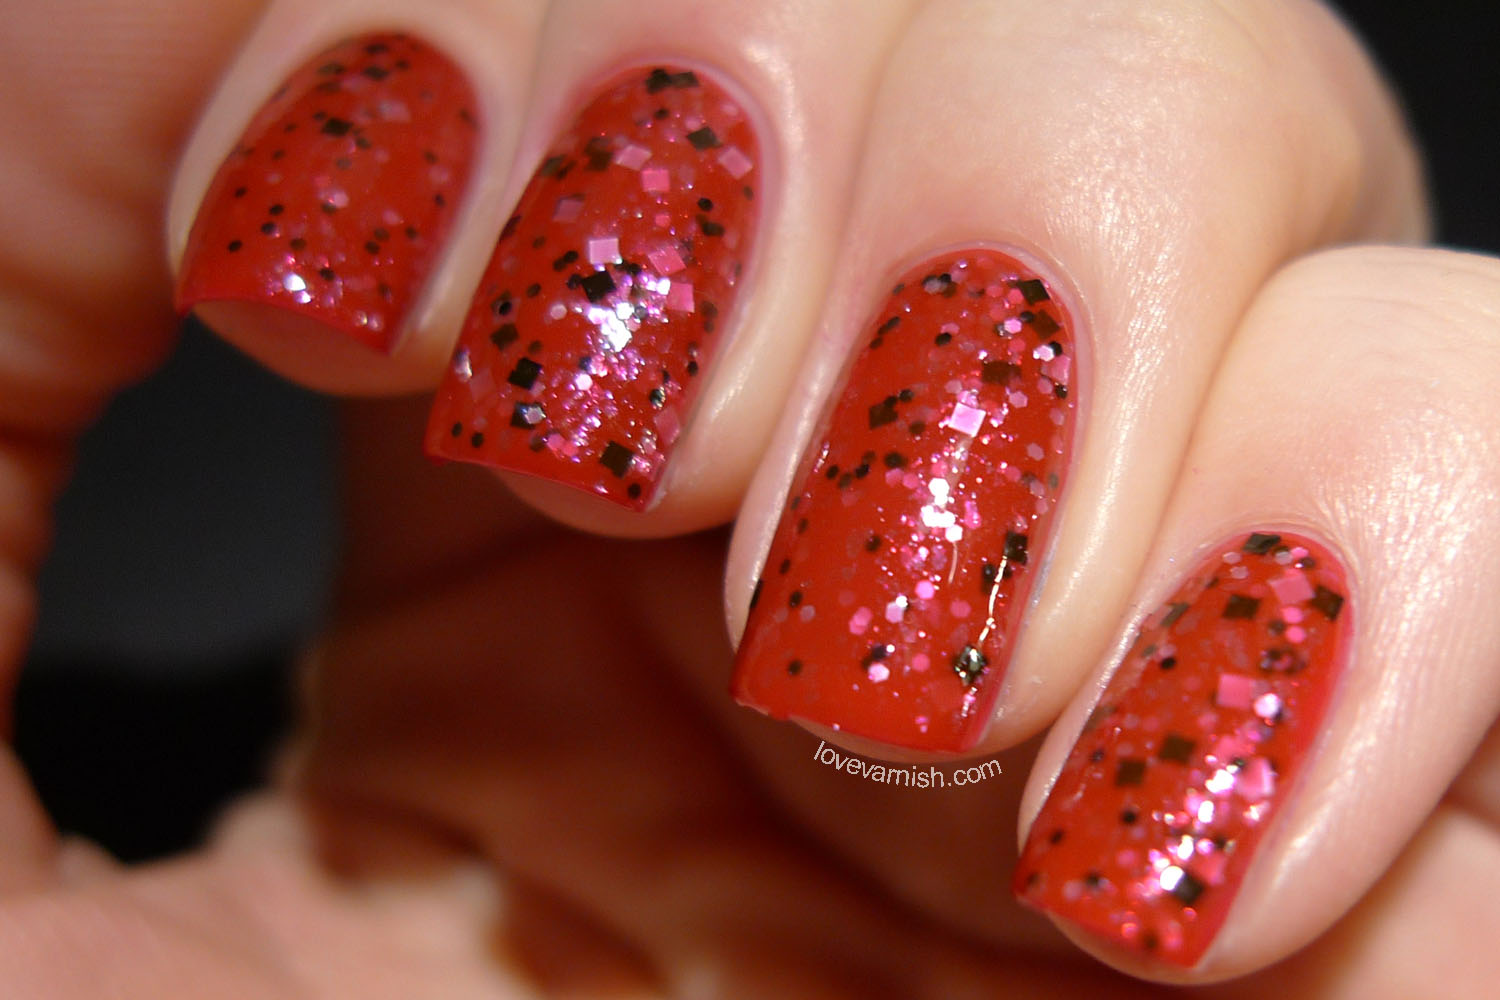 HARE Twin Peaks The Red Room nail polish